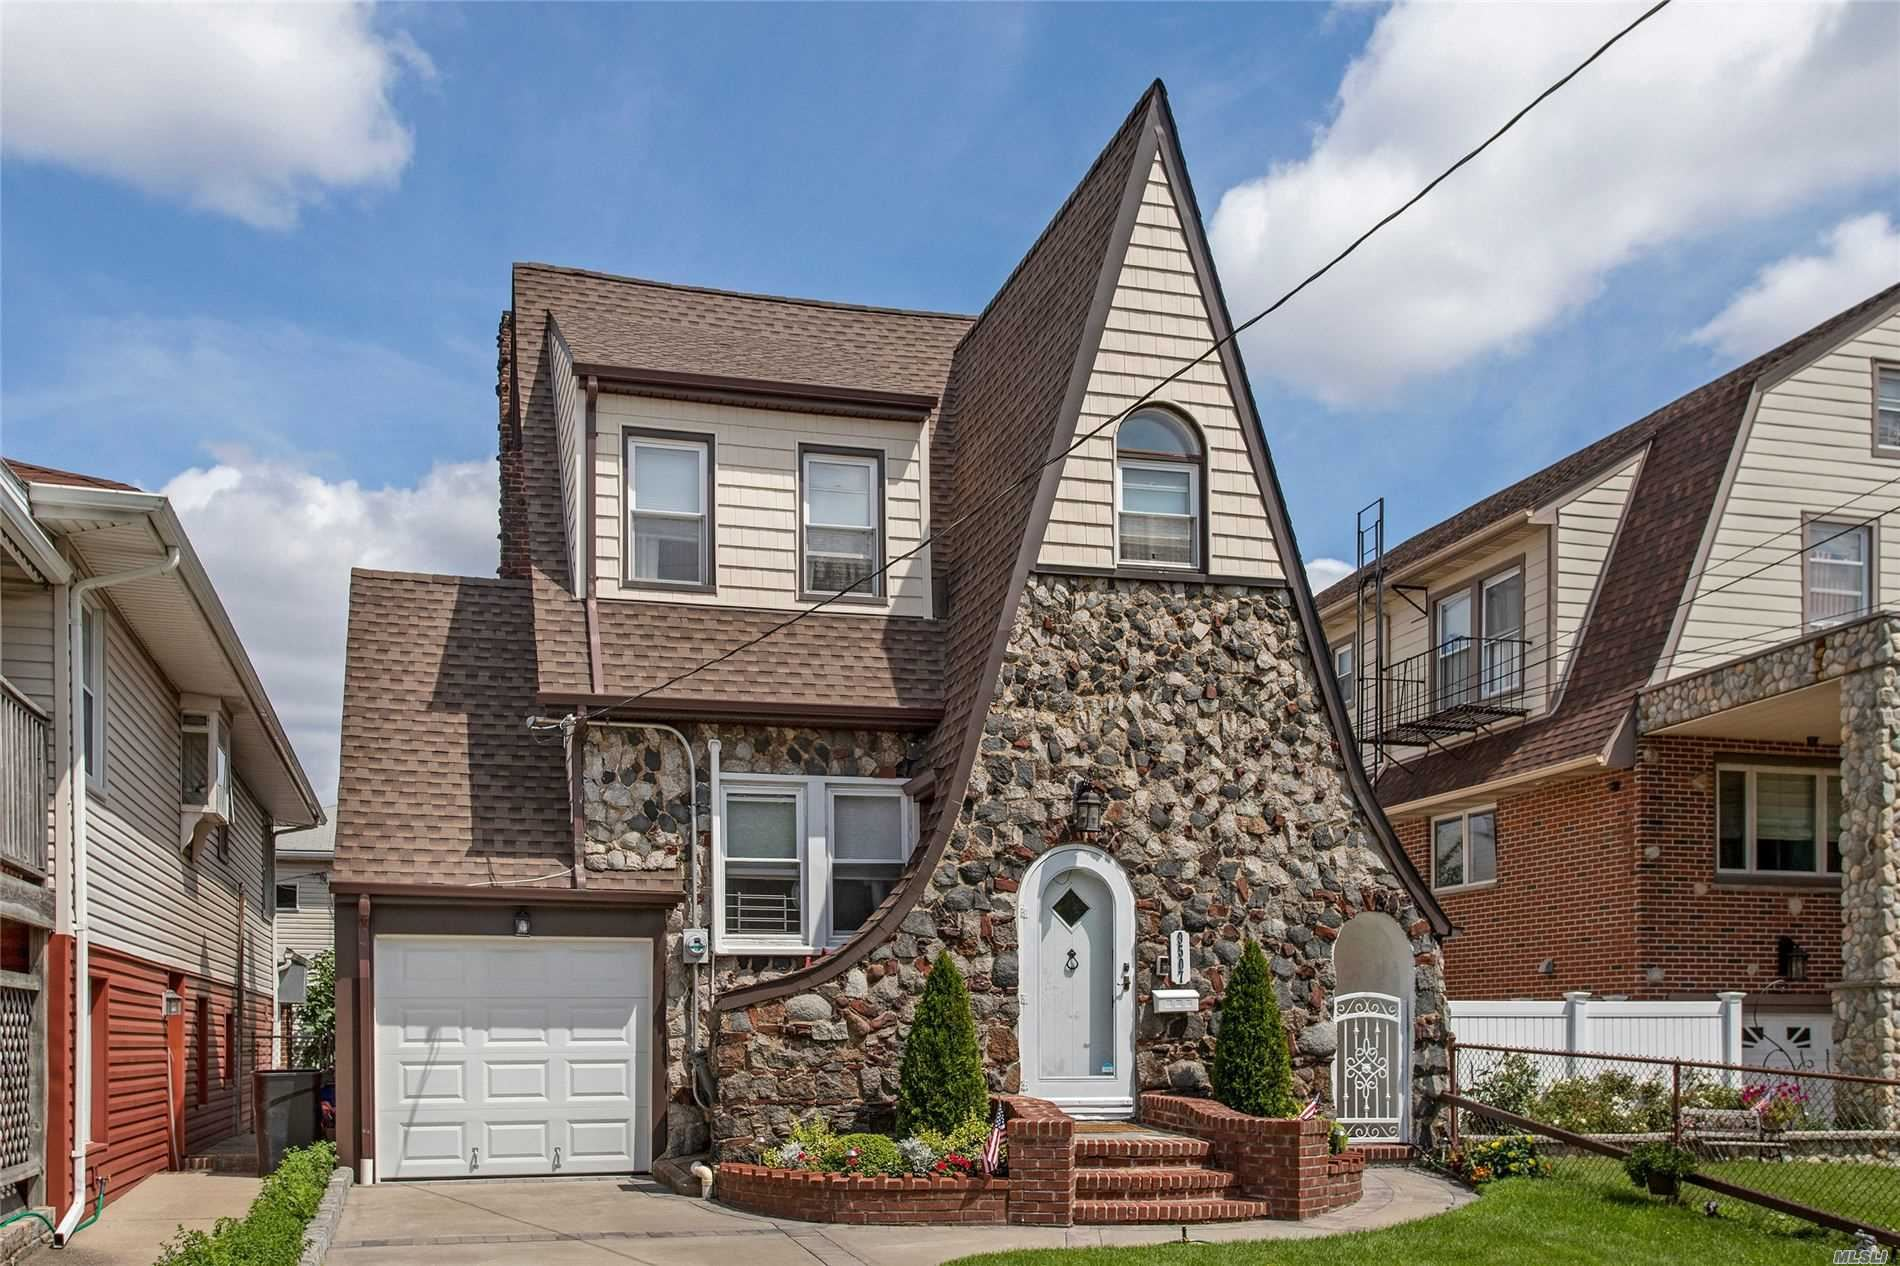 95-07 160th Avenue, Howard Beach, NY 11414 - MLS#: 3234953